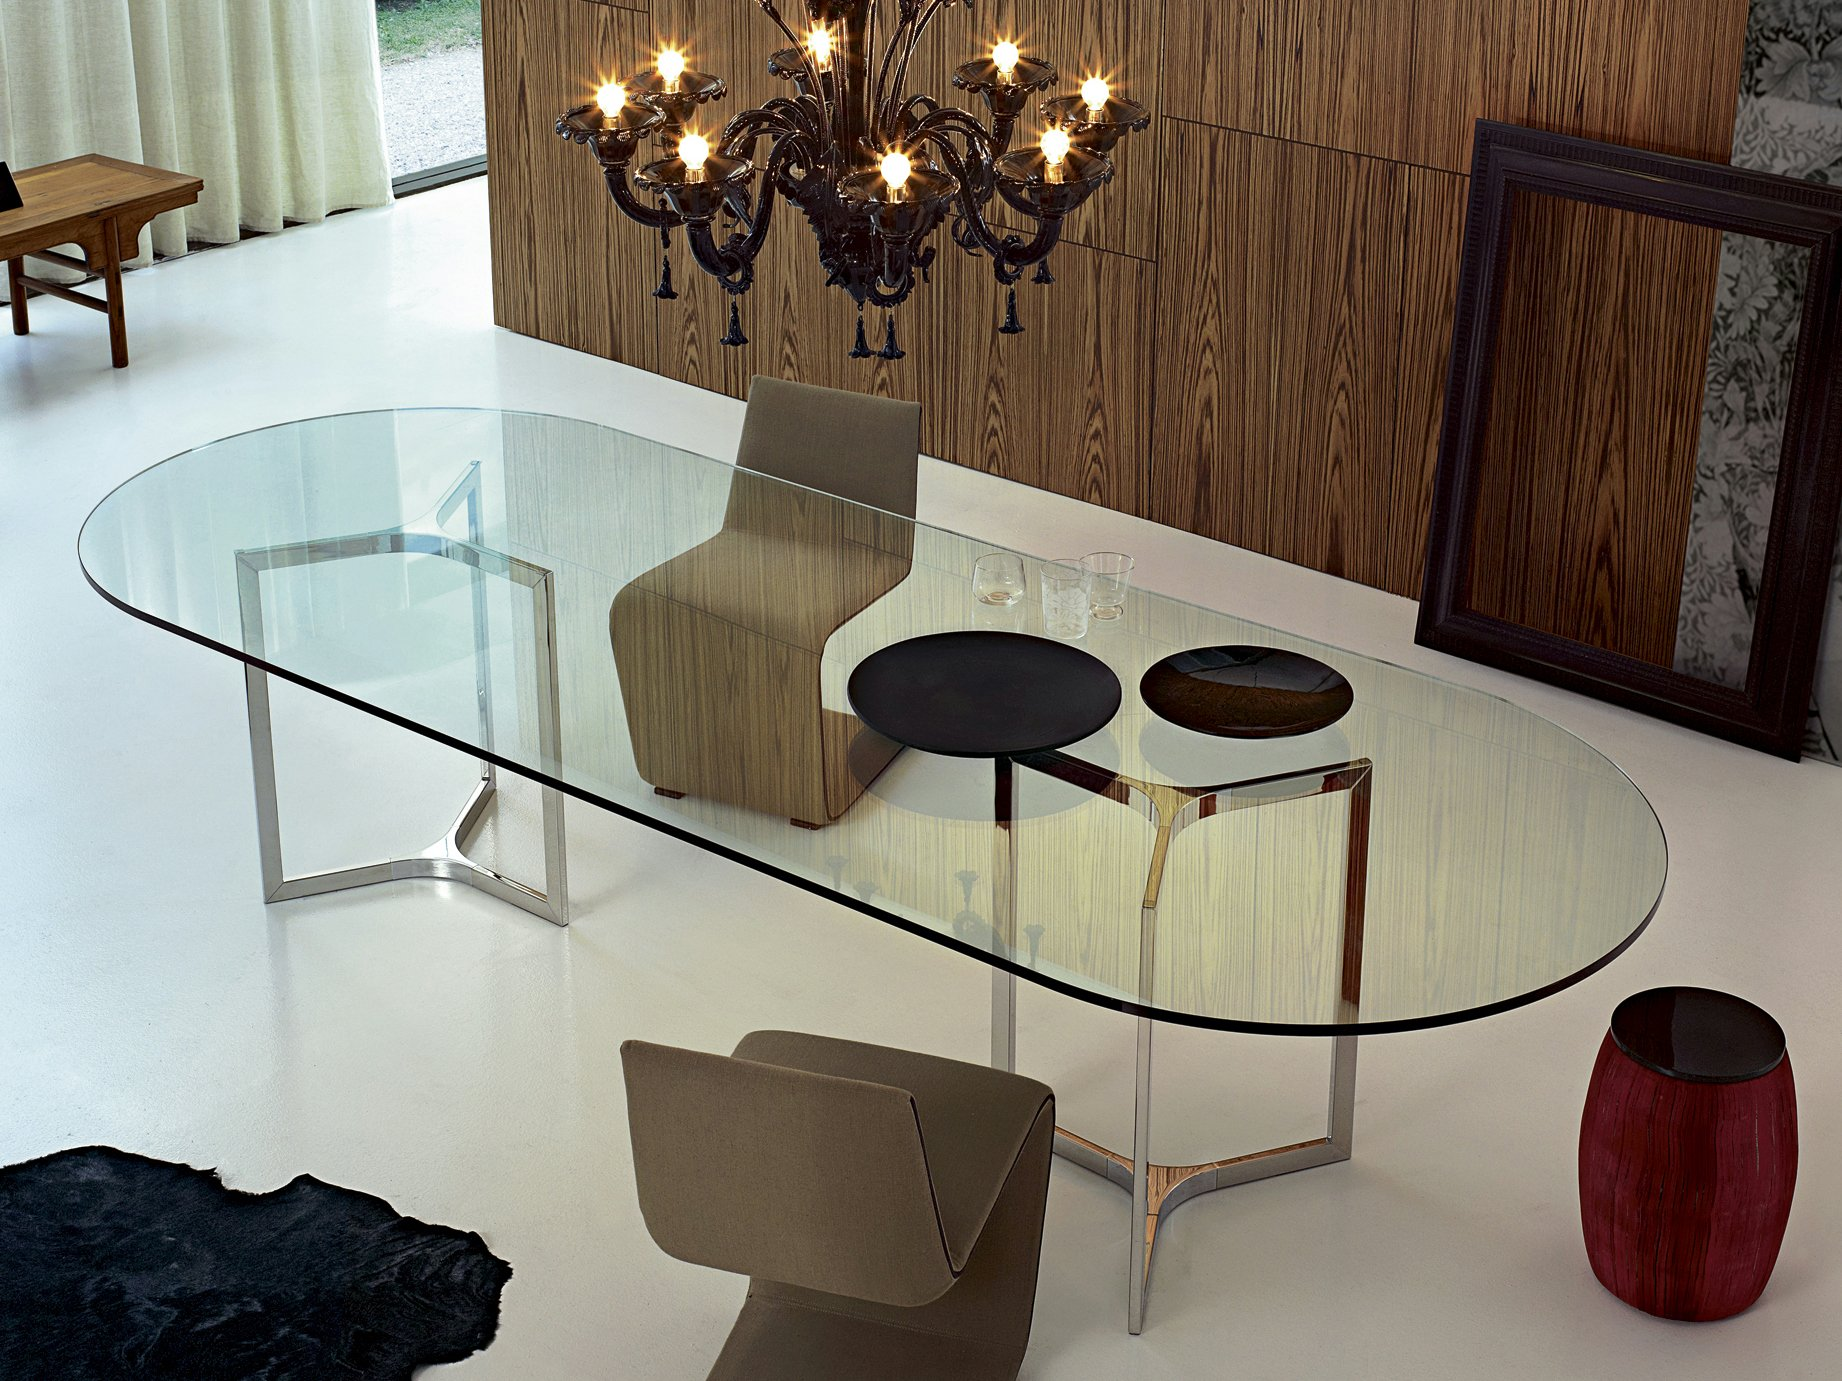 Table manger de salon ovale en acier inoxydable raj light by gallotti r - Table de salon a manger ...